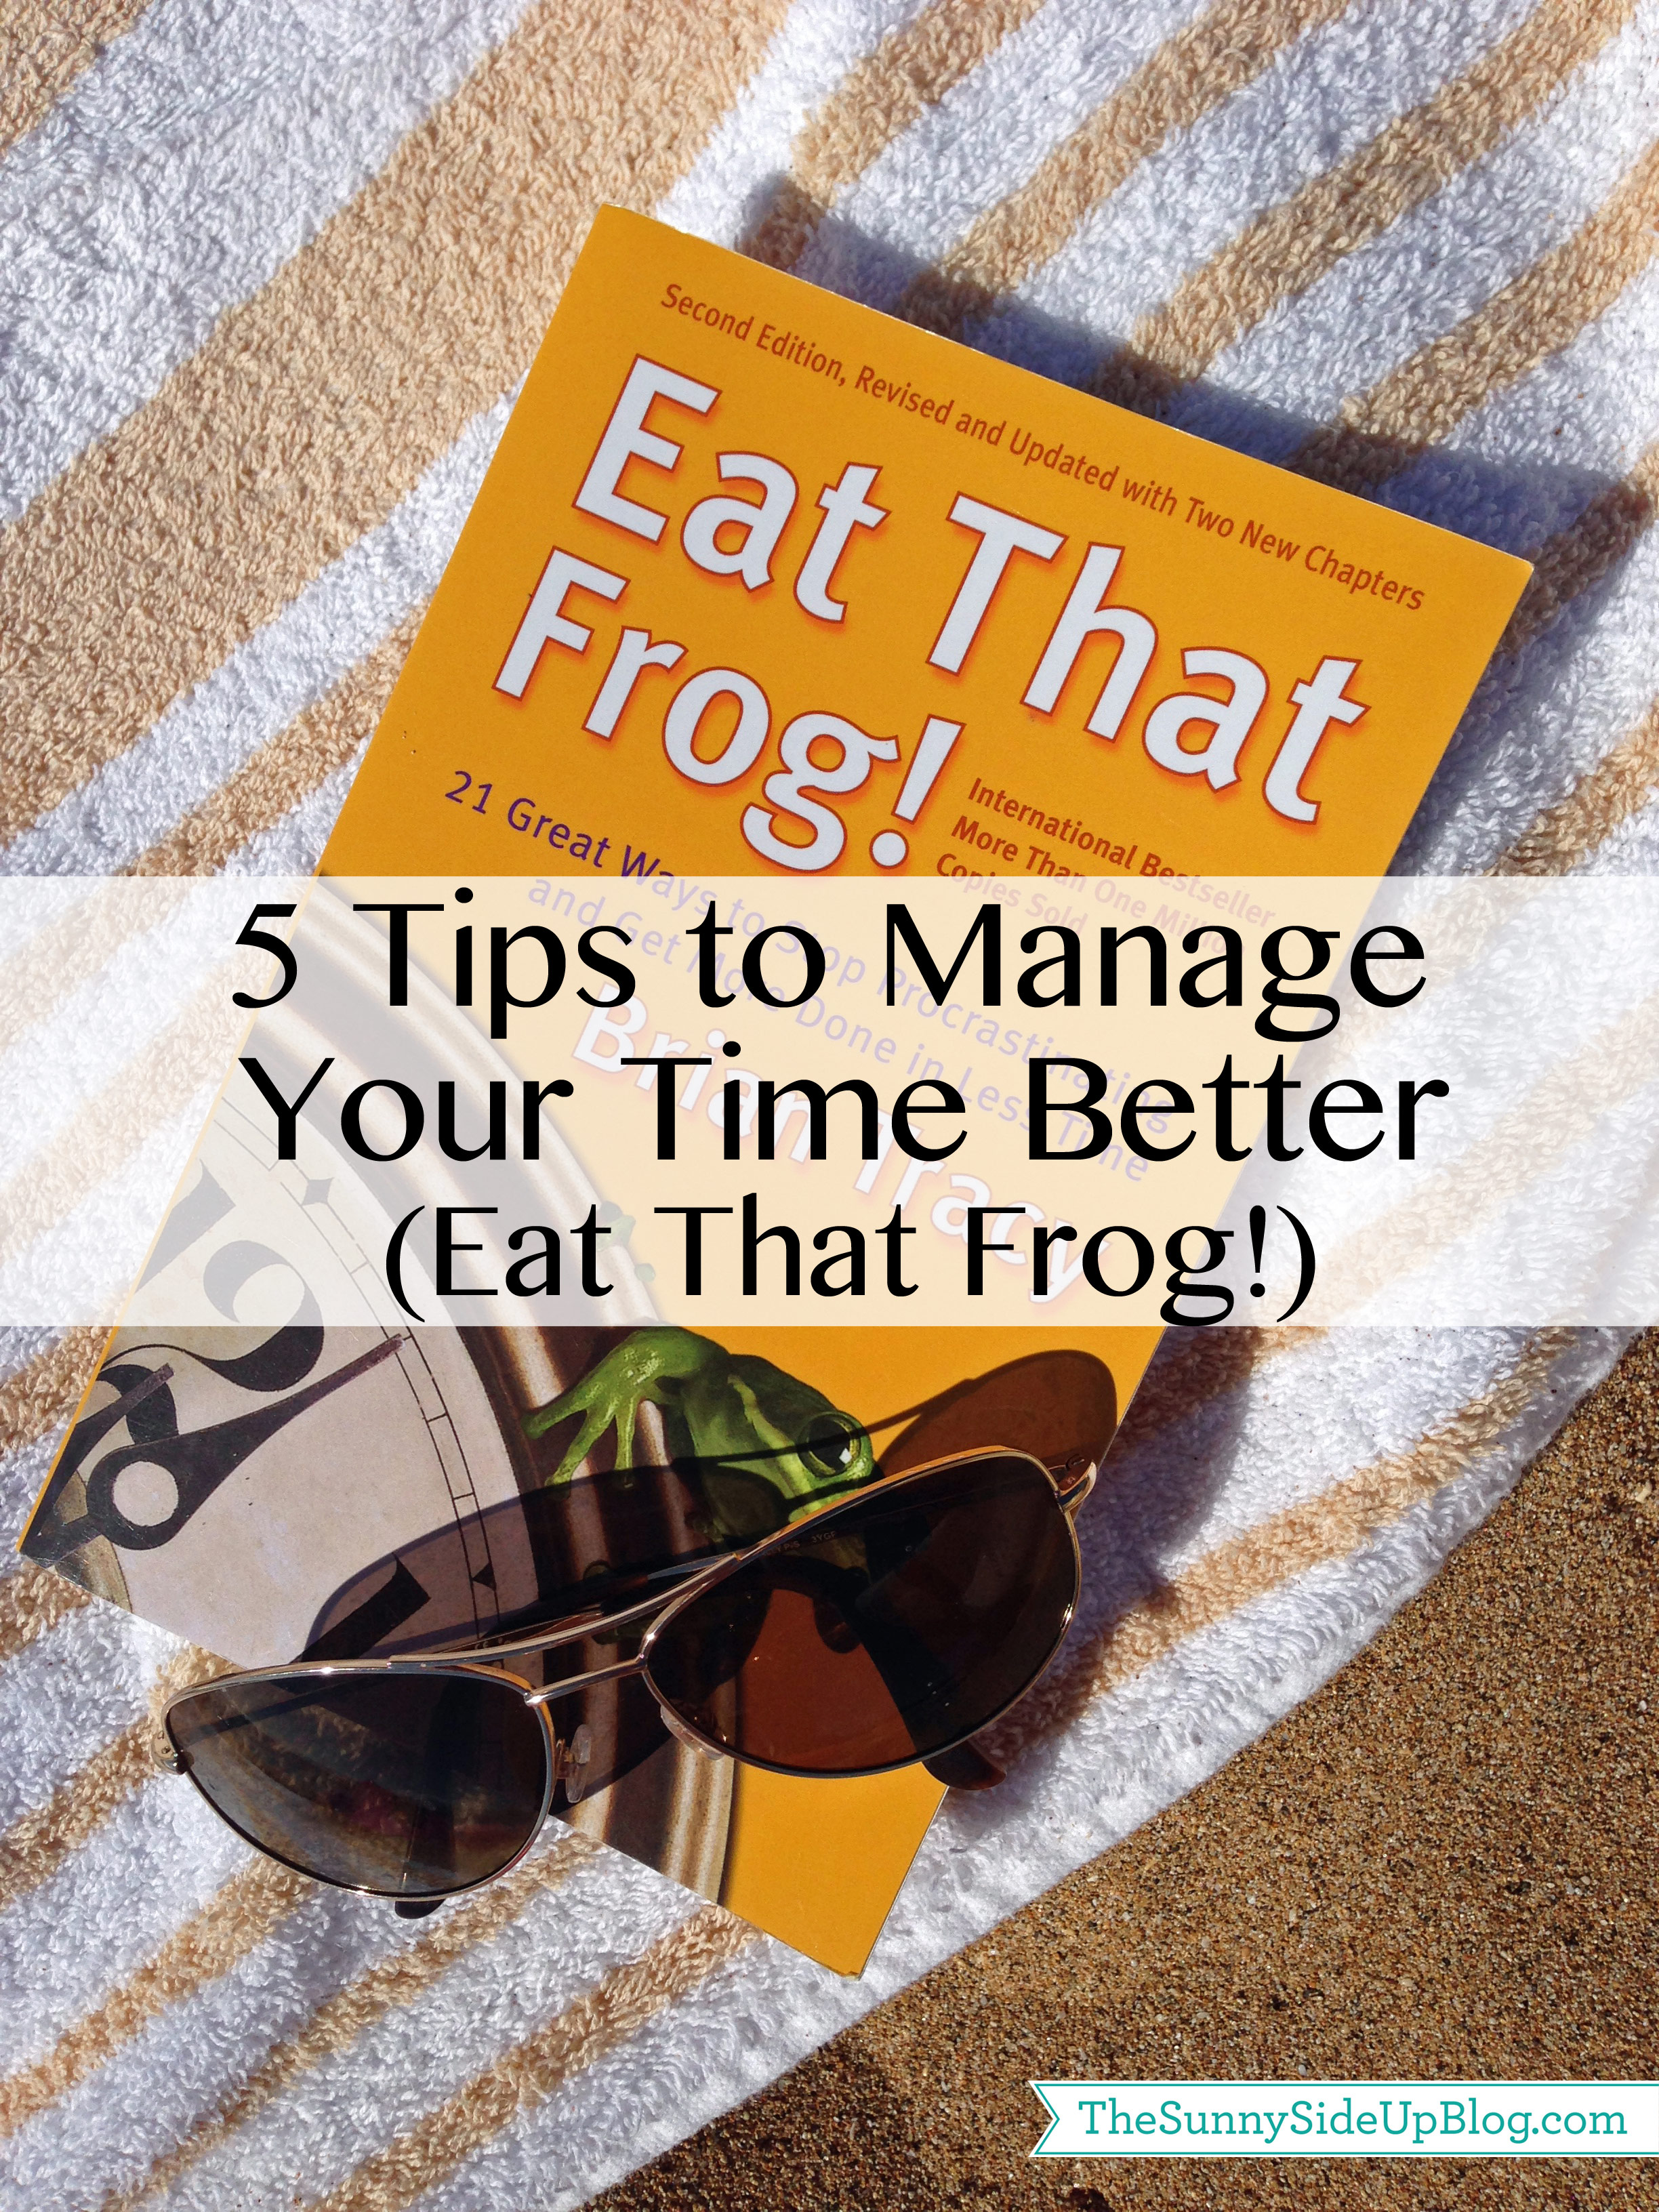 5 tips to manage your time better (Eat That Frog!)